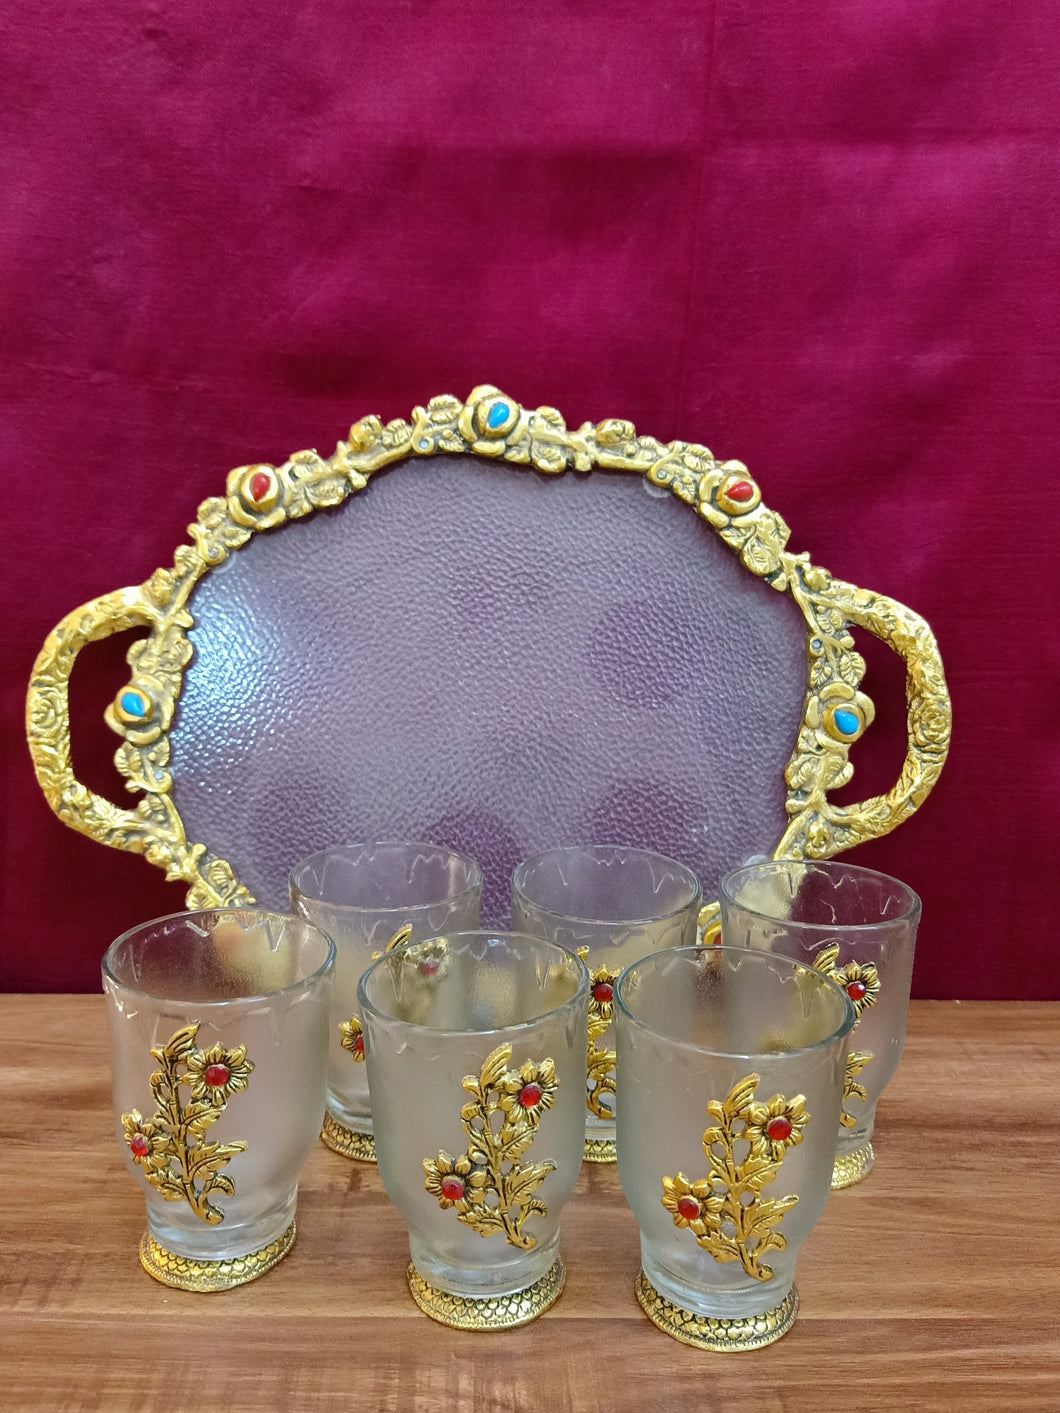 Golden brocade tray of 6 glasses